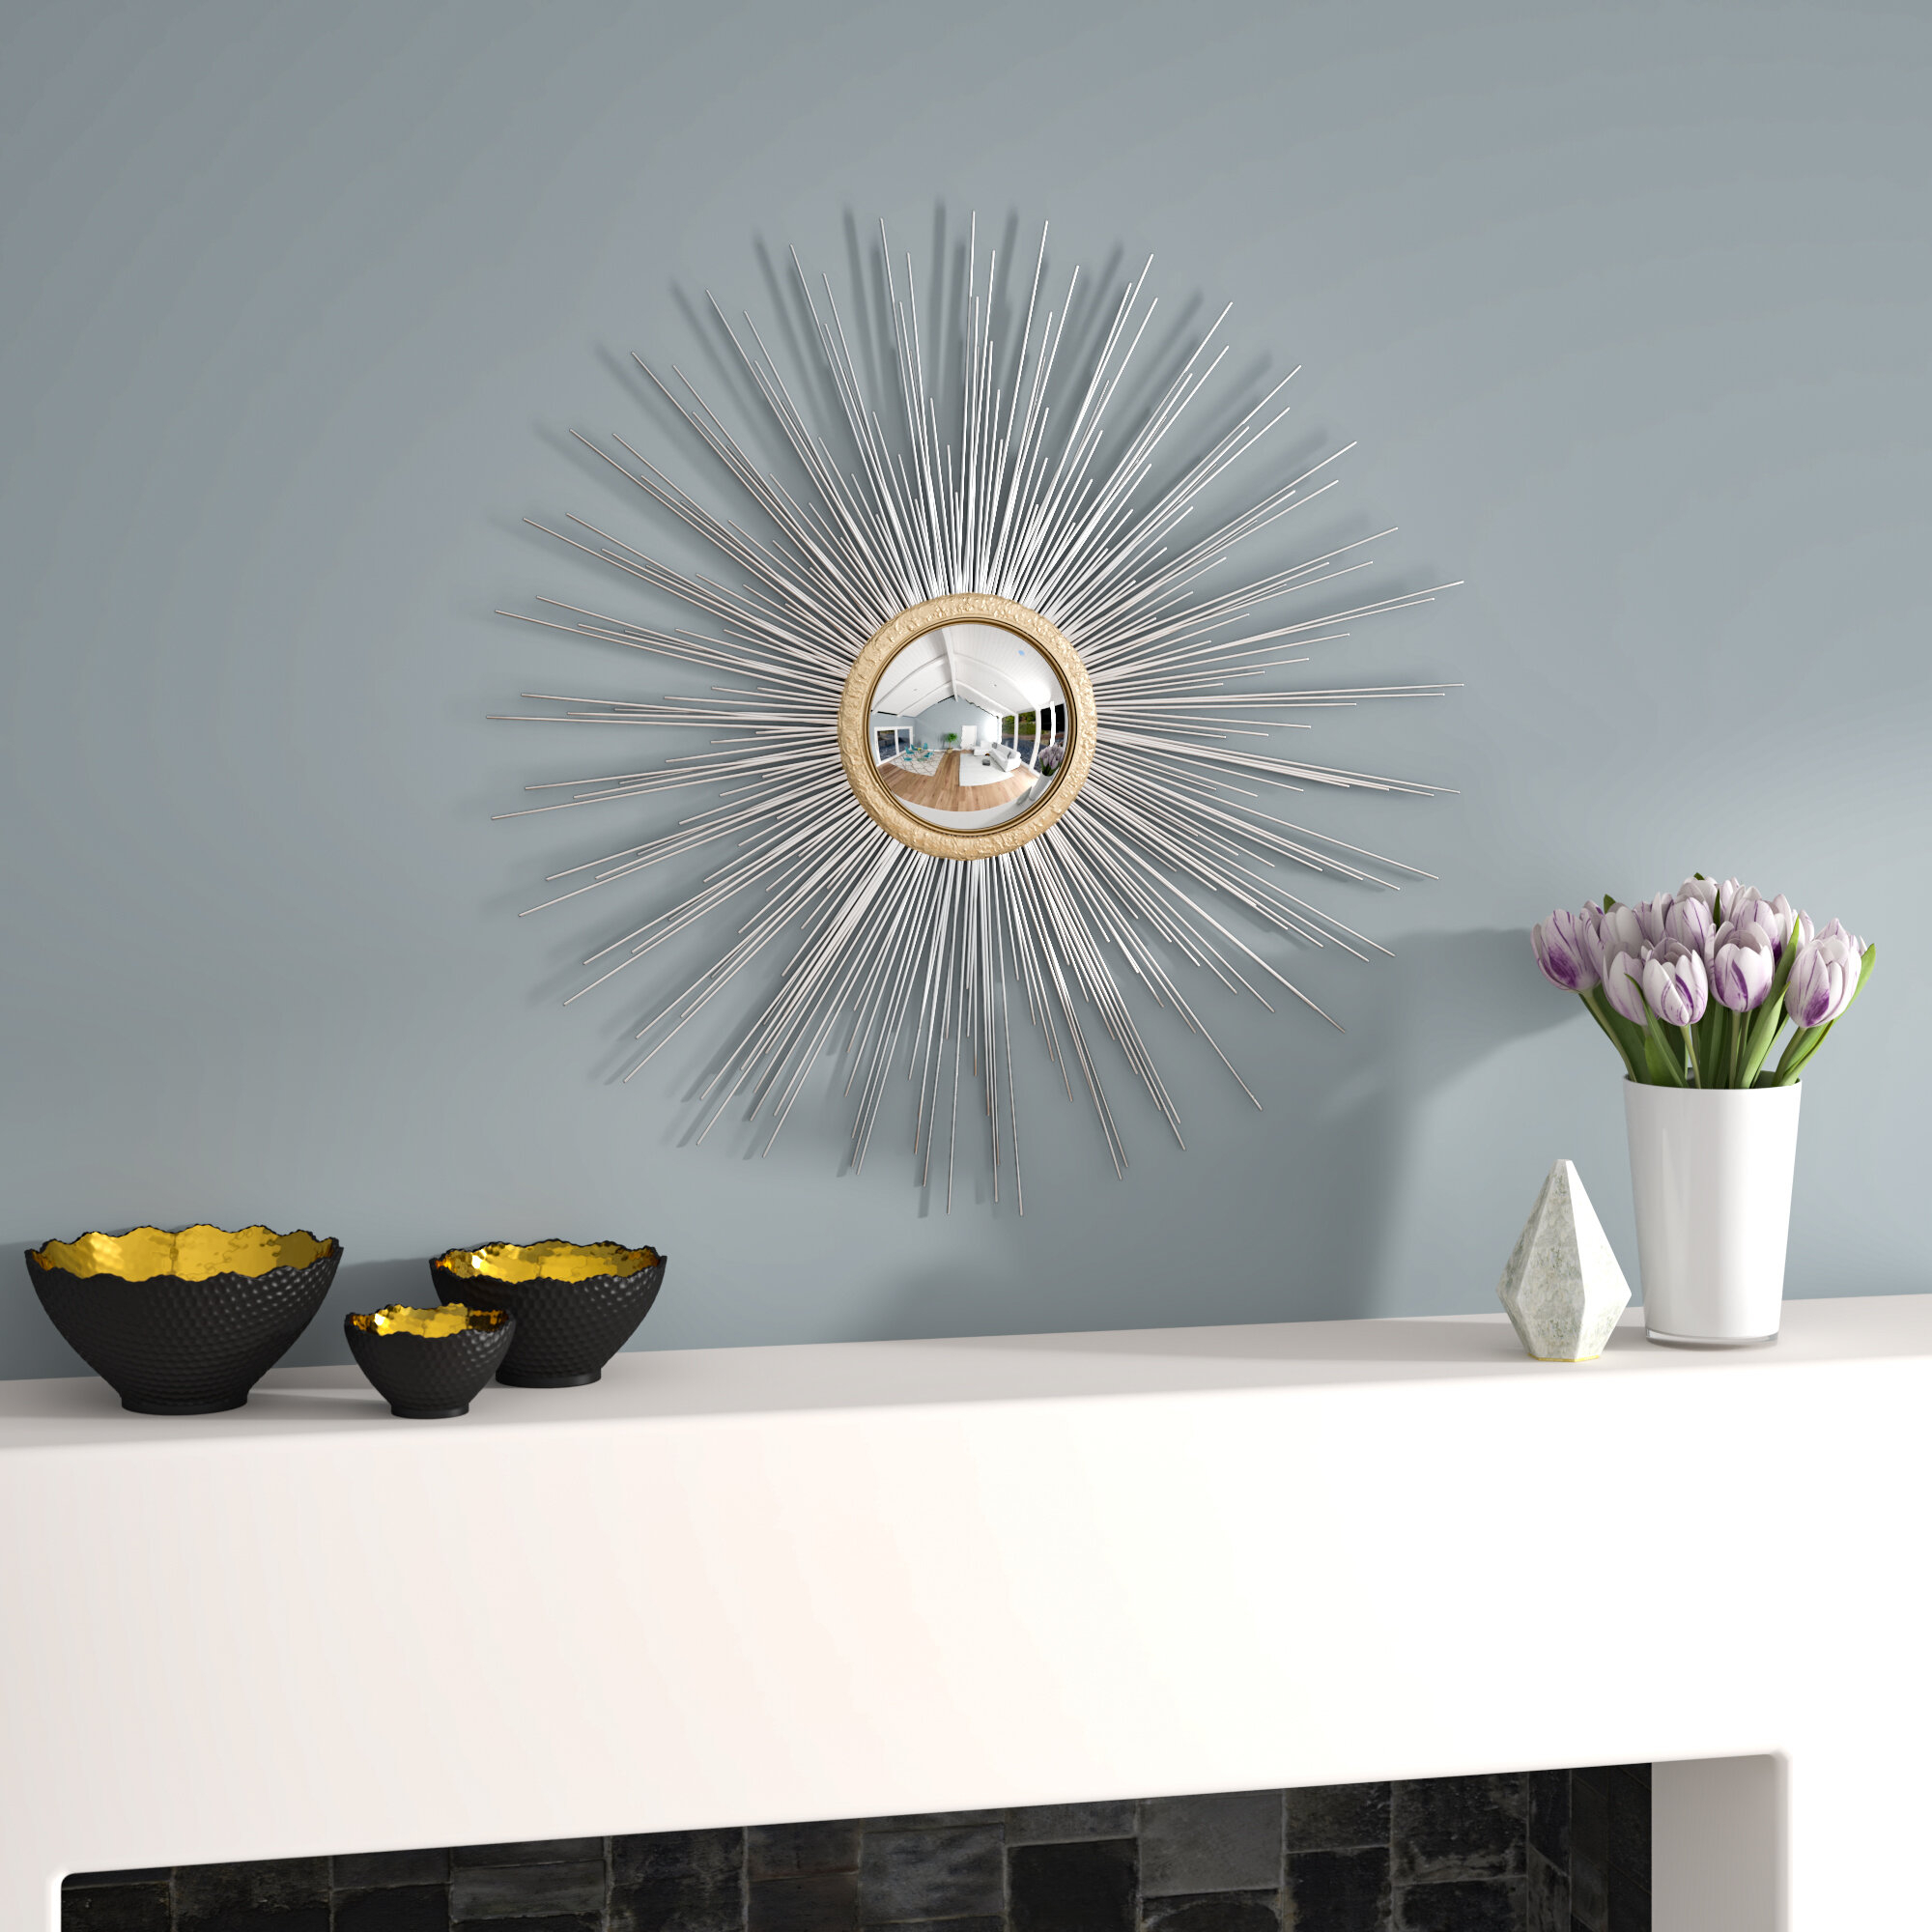 Starburst Sculpture | Wayfair With Set Of 3 Contemporary 6, 9, And 11 Inch Gold Tin Starburst Sculptures (View 8 of 30)